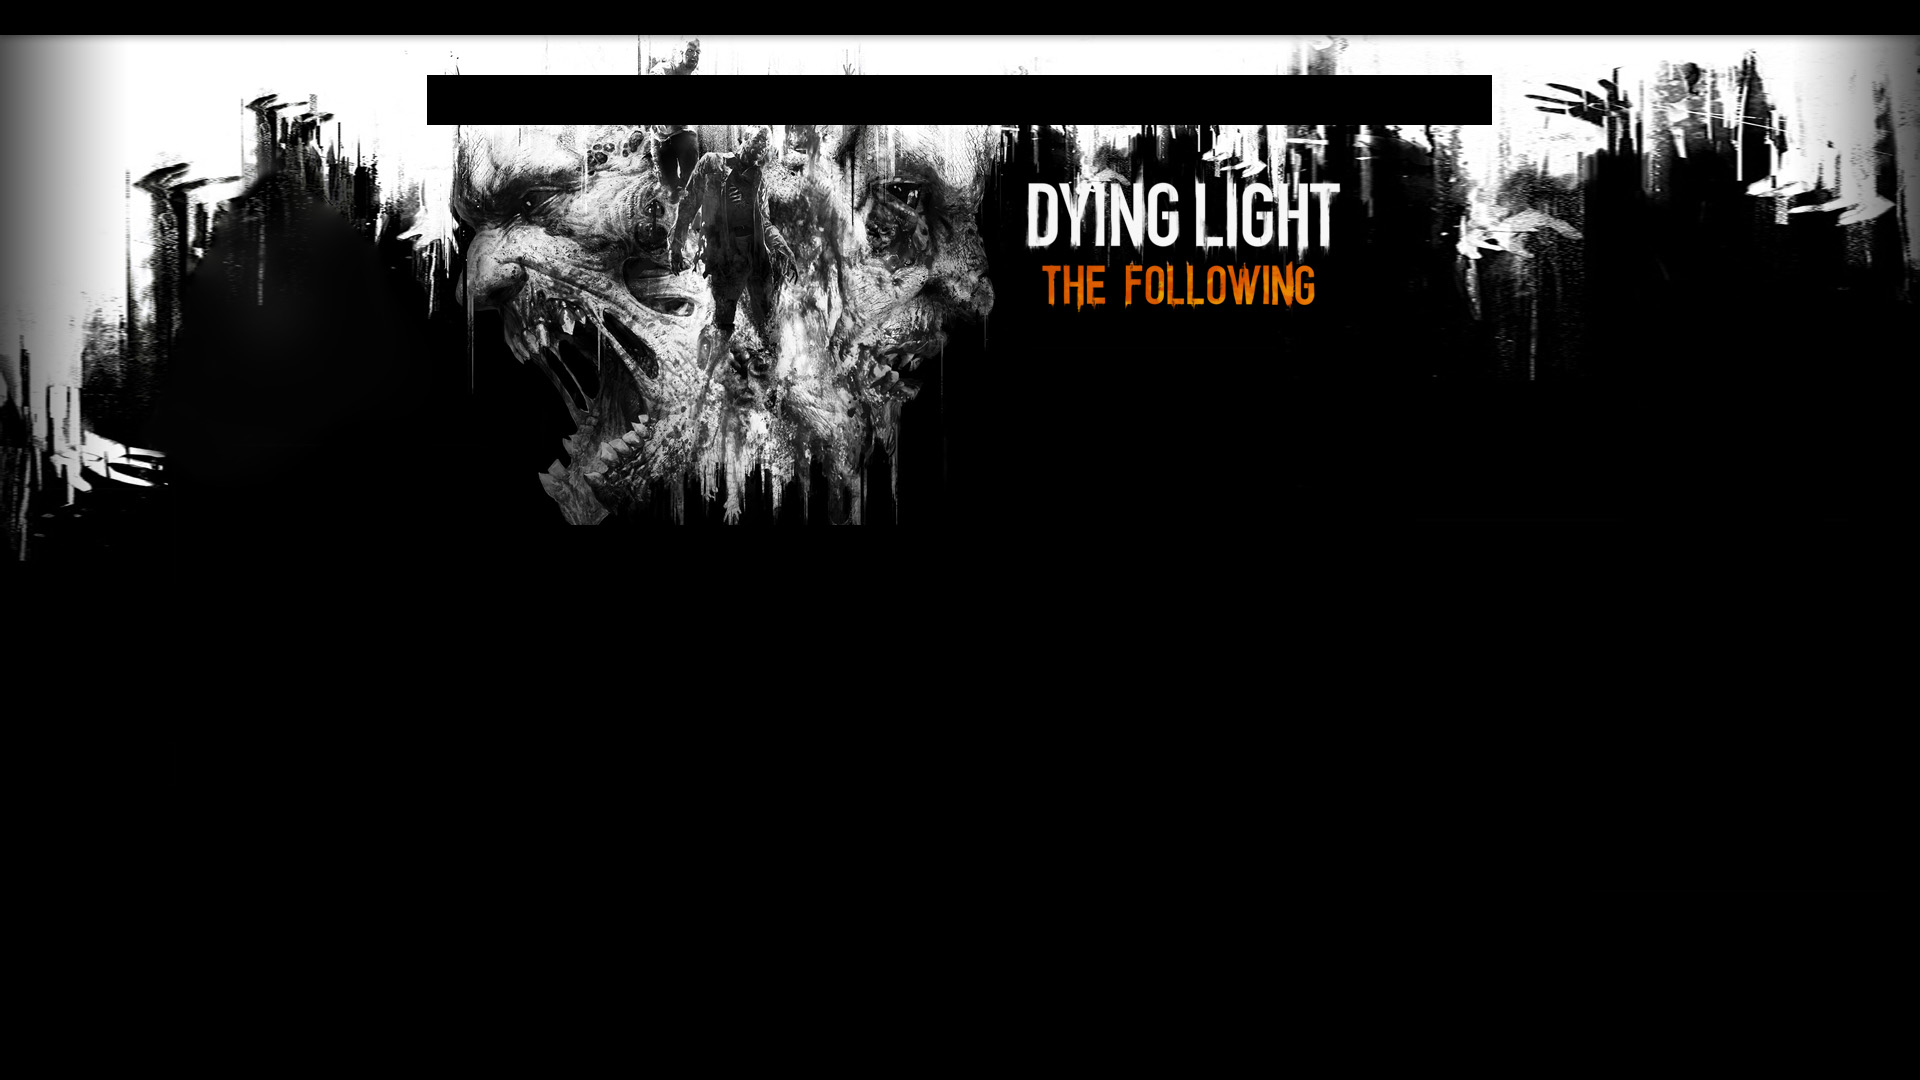 Dying Light: The Following DLC<br/>And Enhanced Edition video game